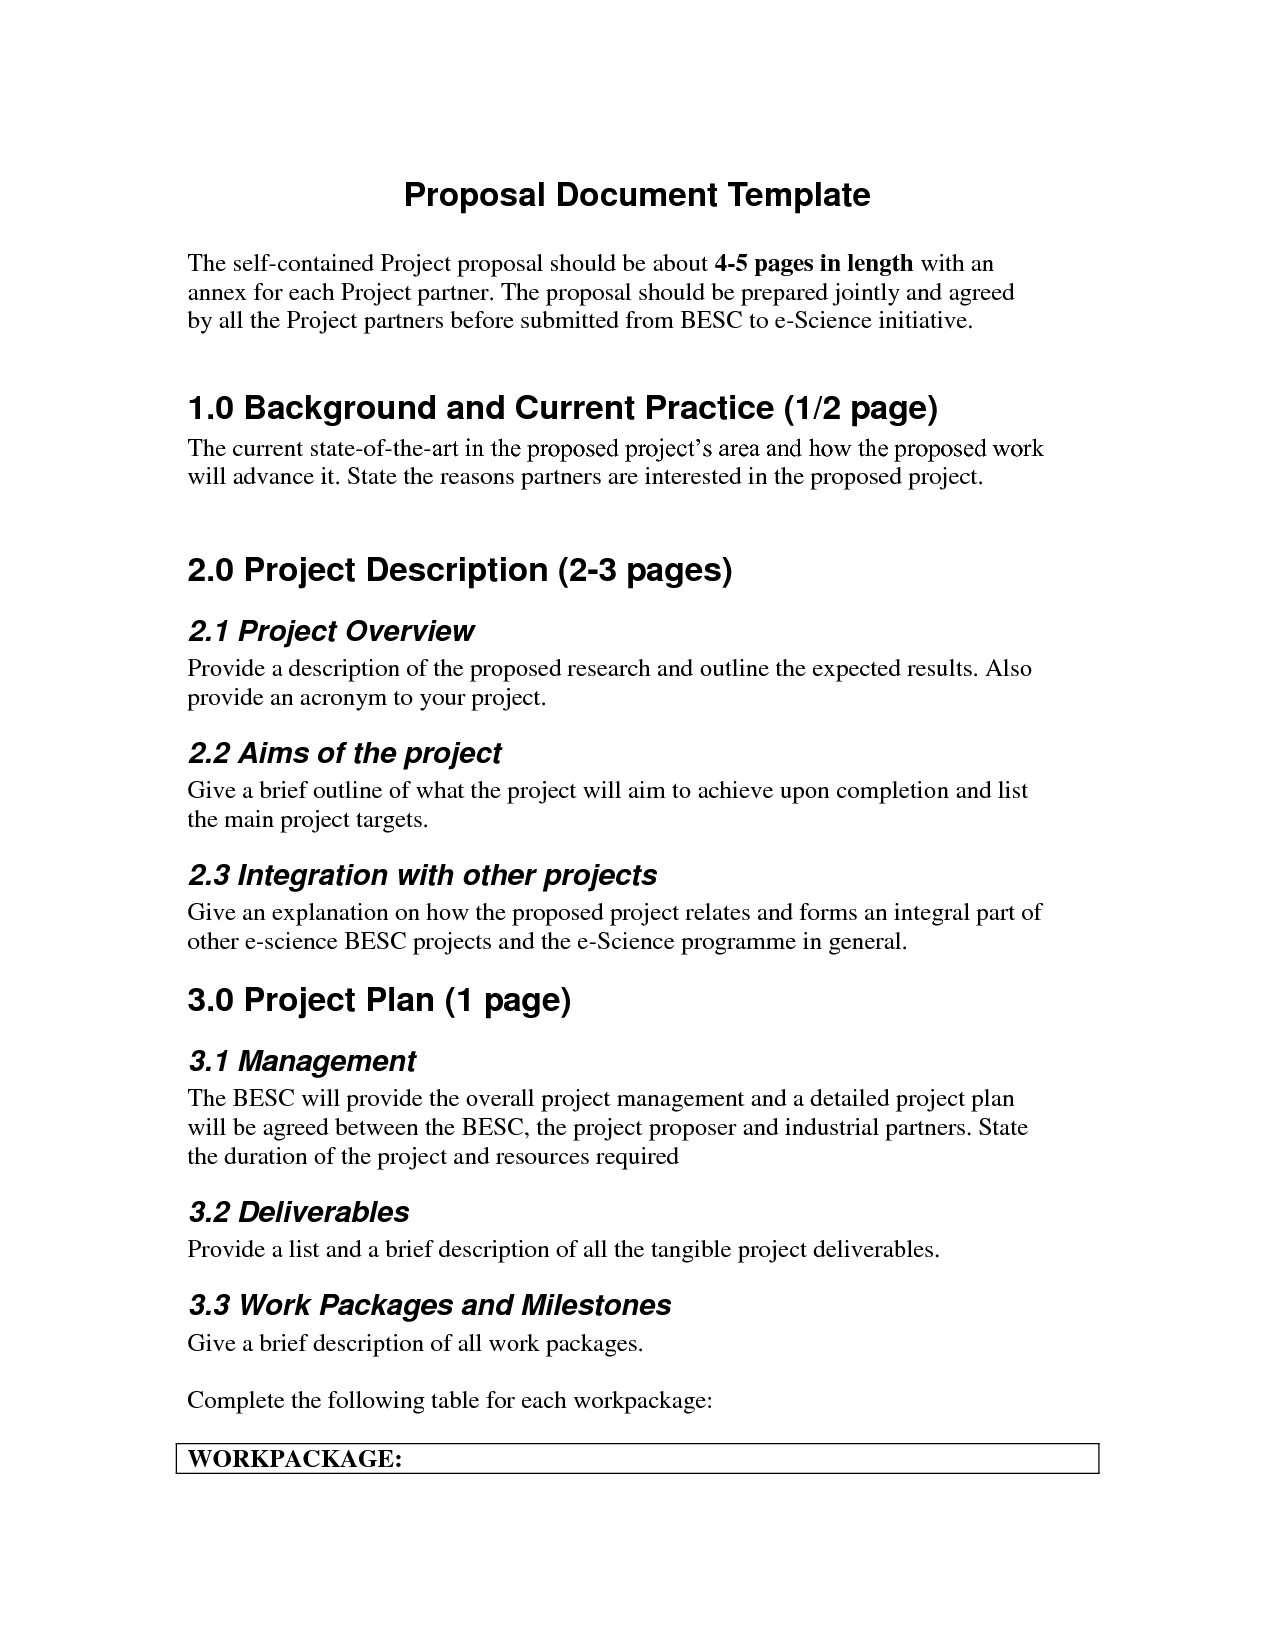 004 Essay proposal template. Proposal essay topics. Before